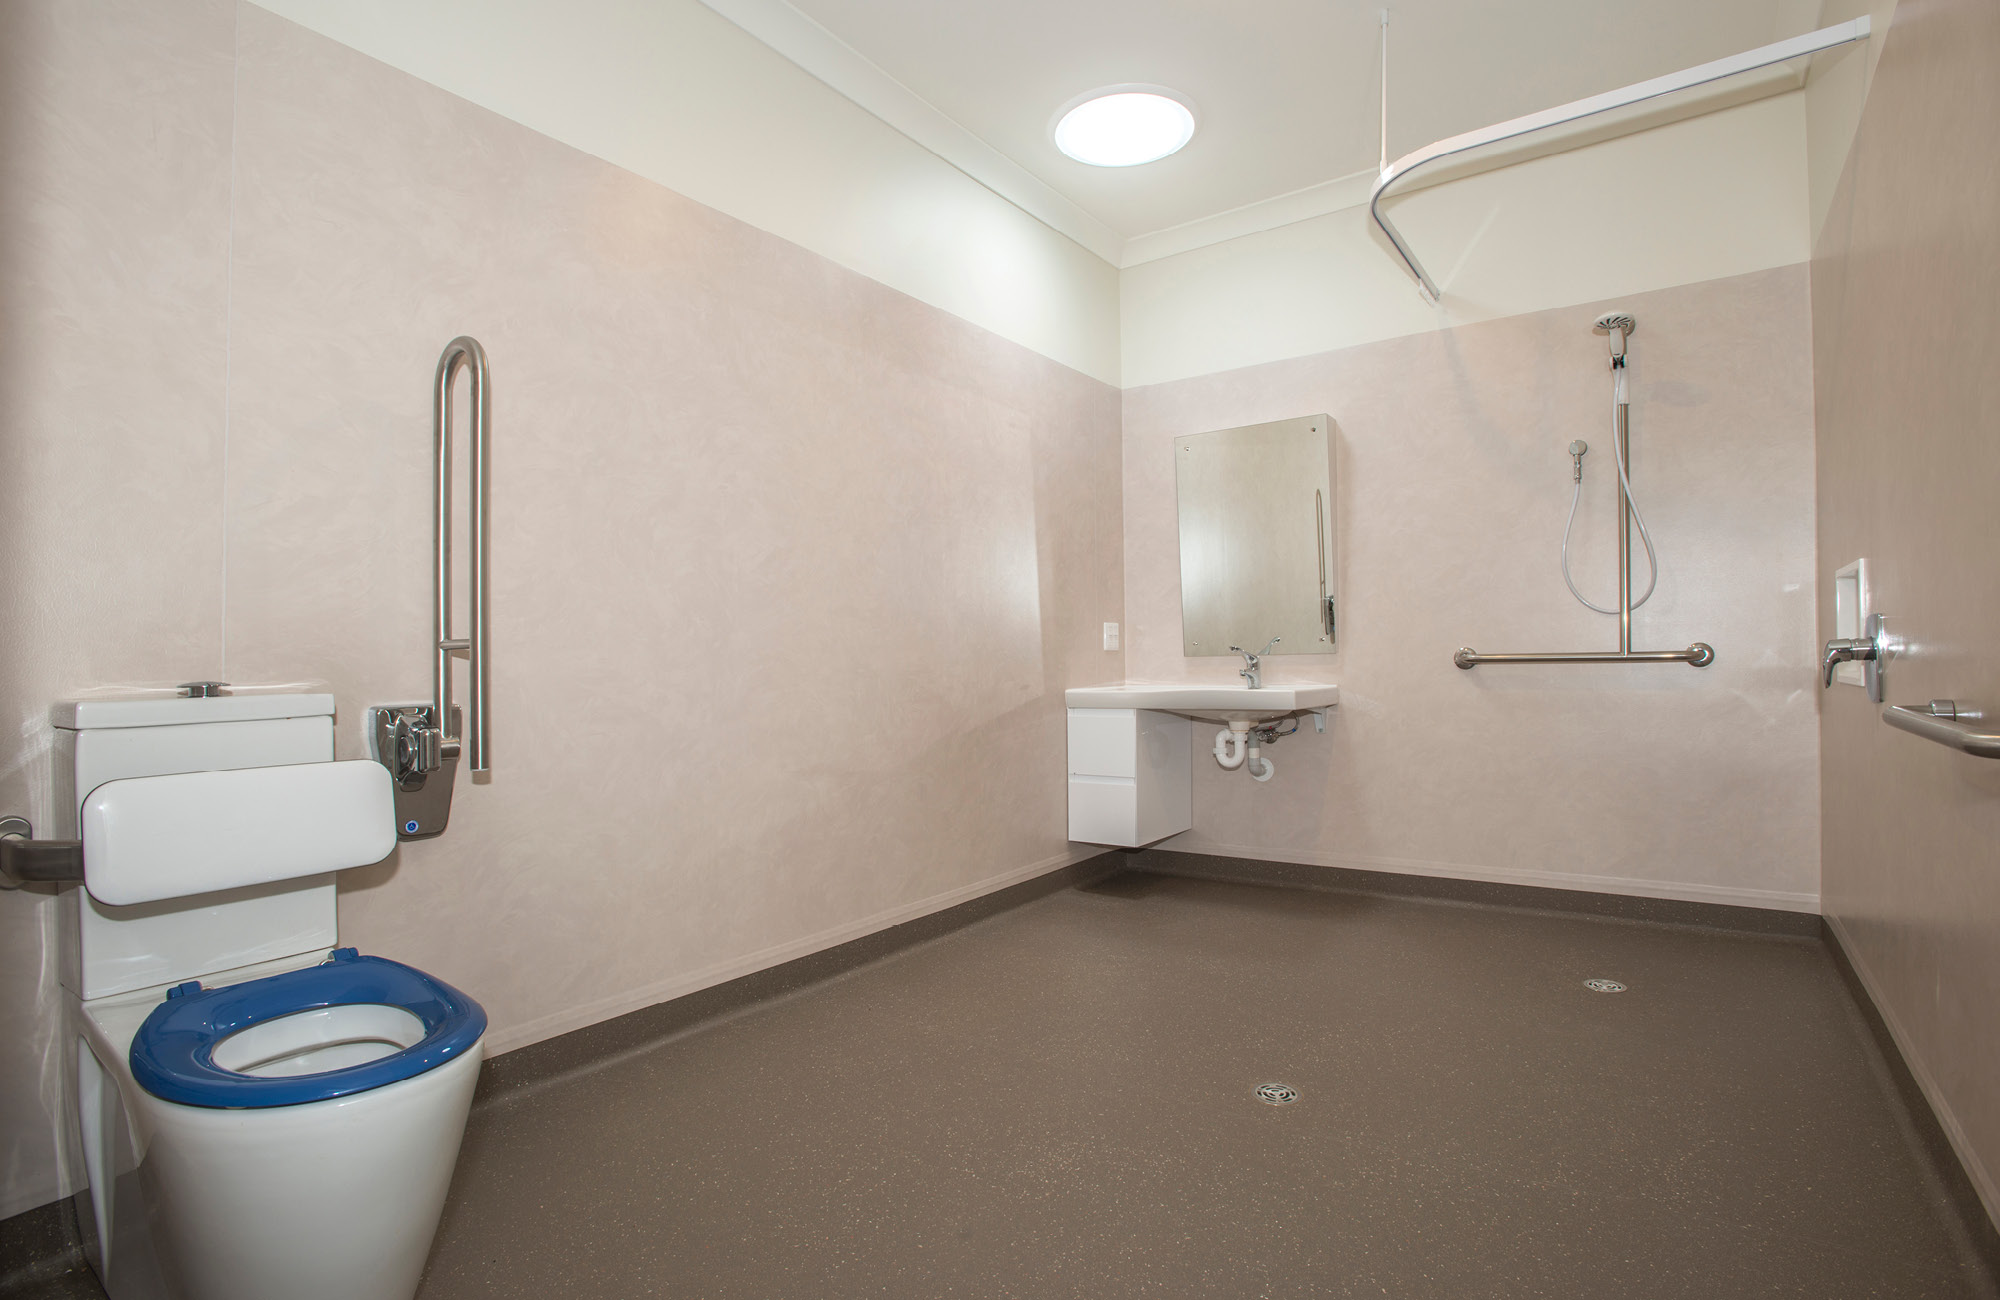 Lightsview Specialised Disability Bathroom